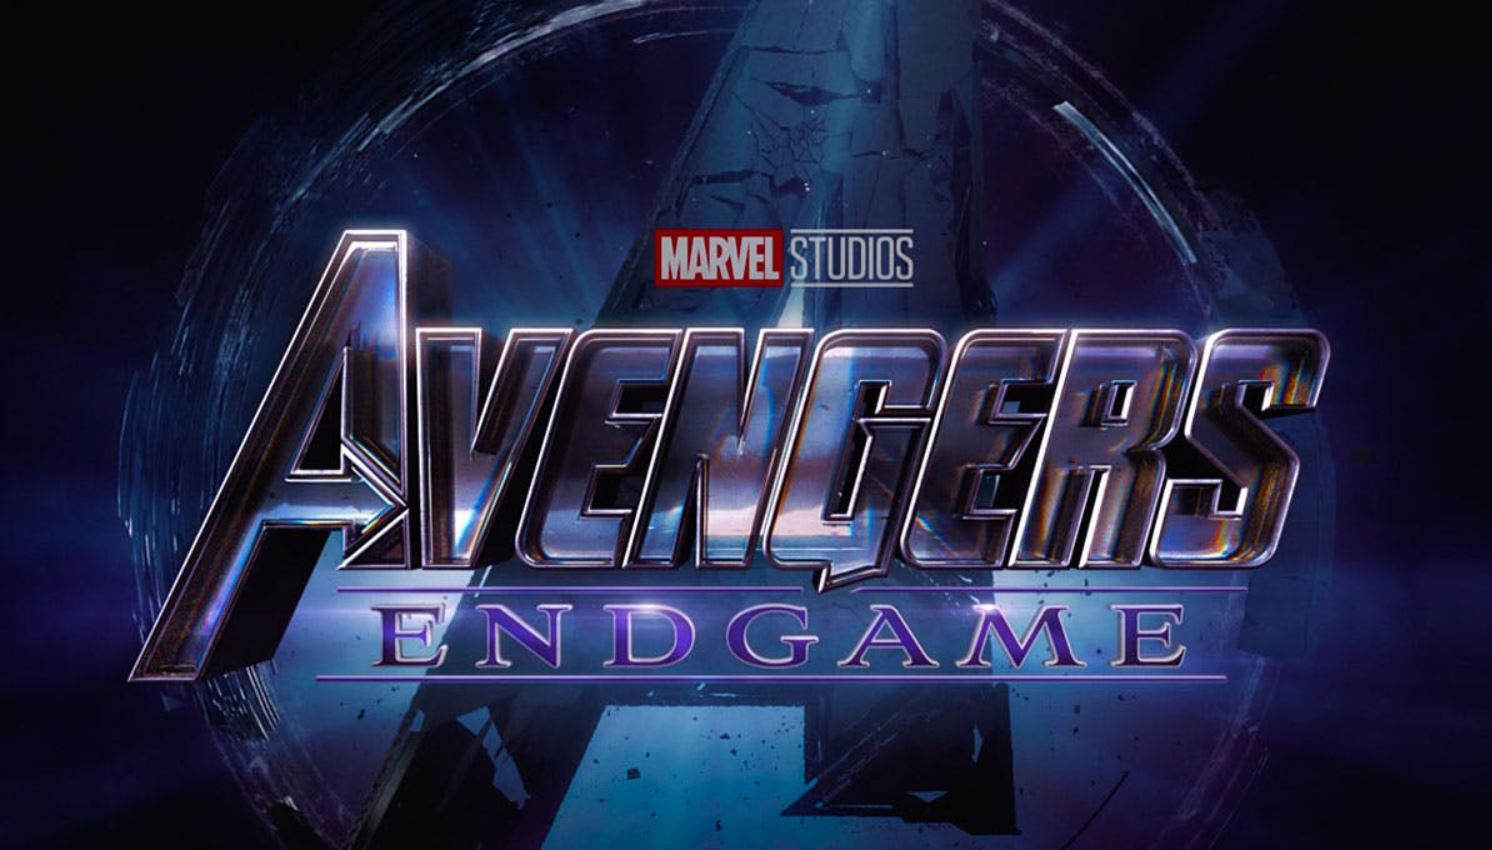 Did New Toy Just Spoil Avengers: Endgame?